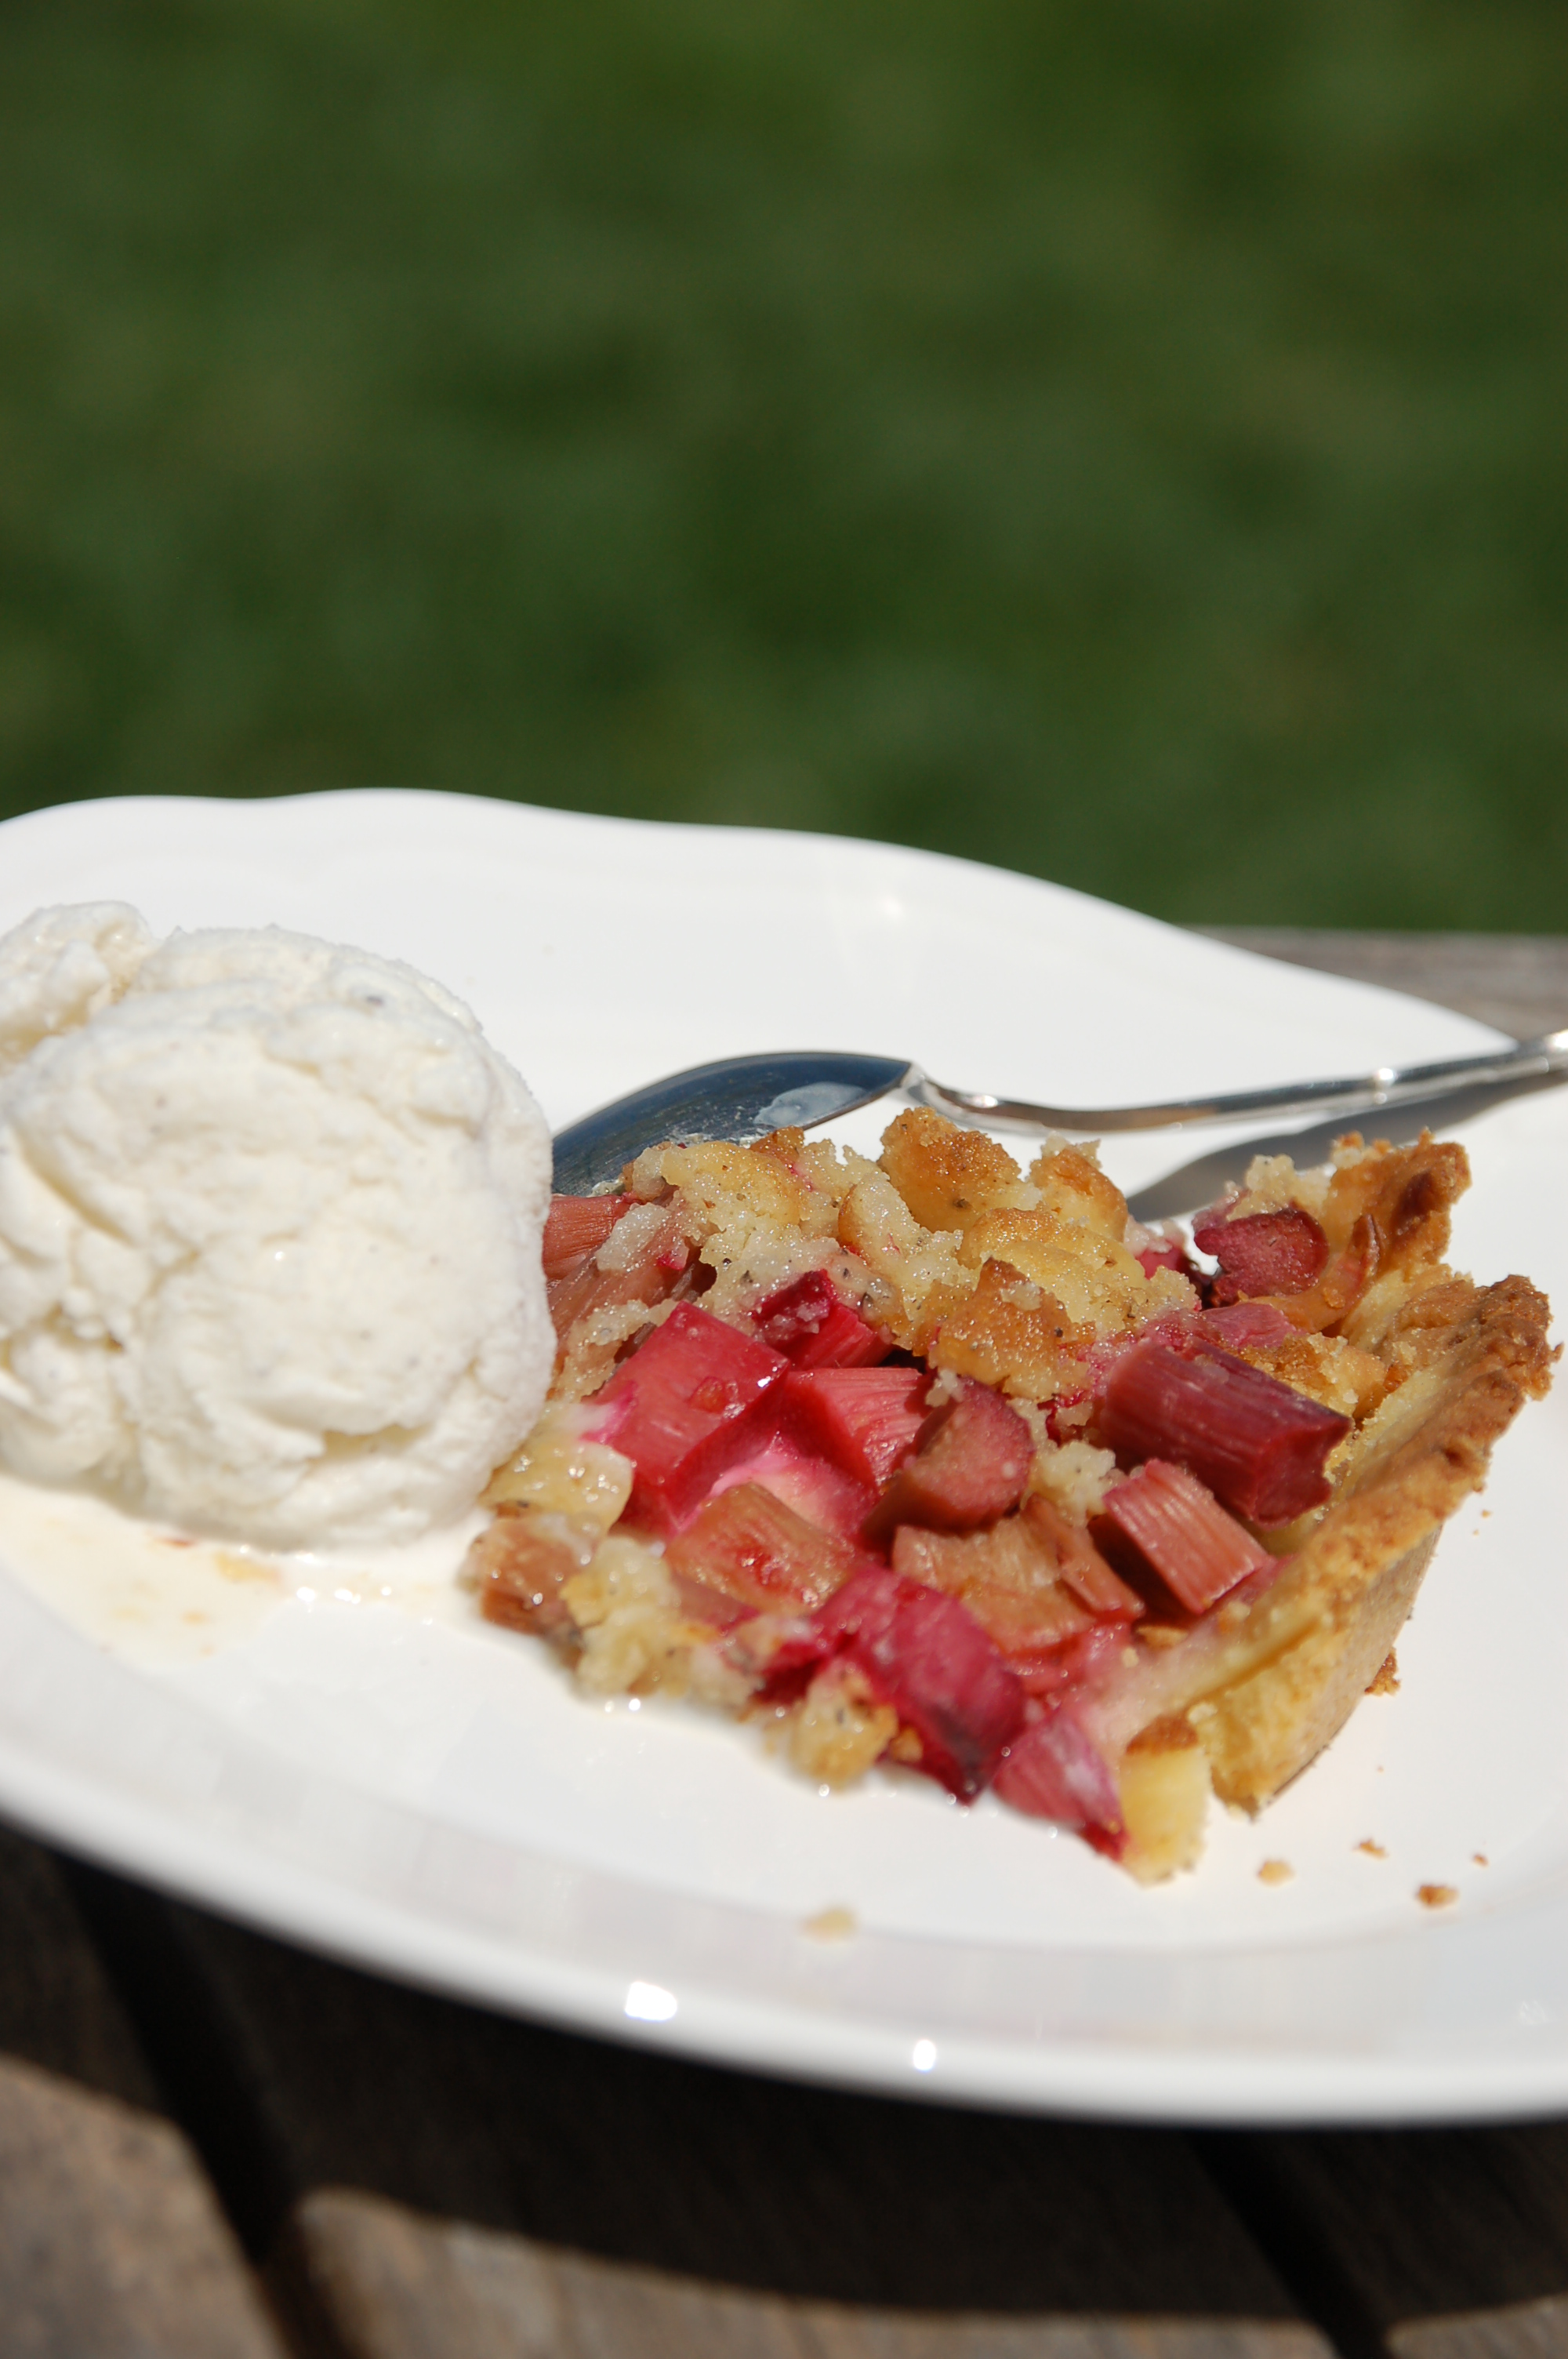 Rhubarb pie with cardamom topping.